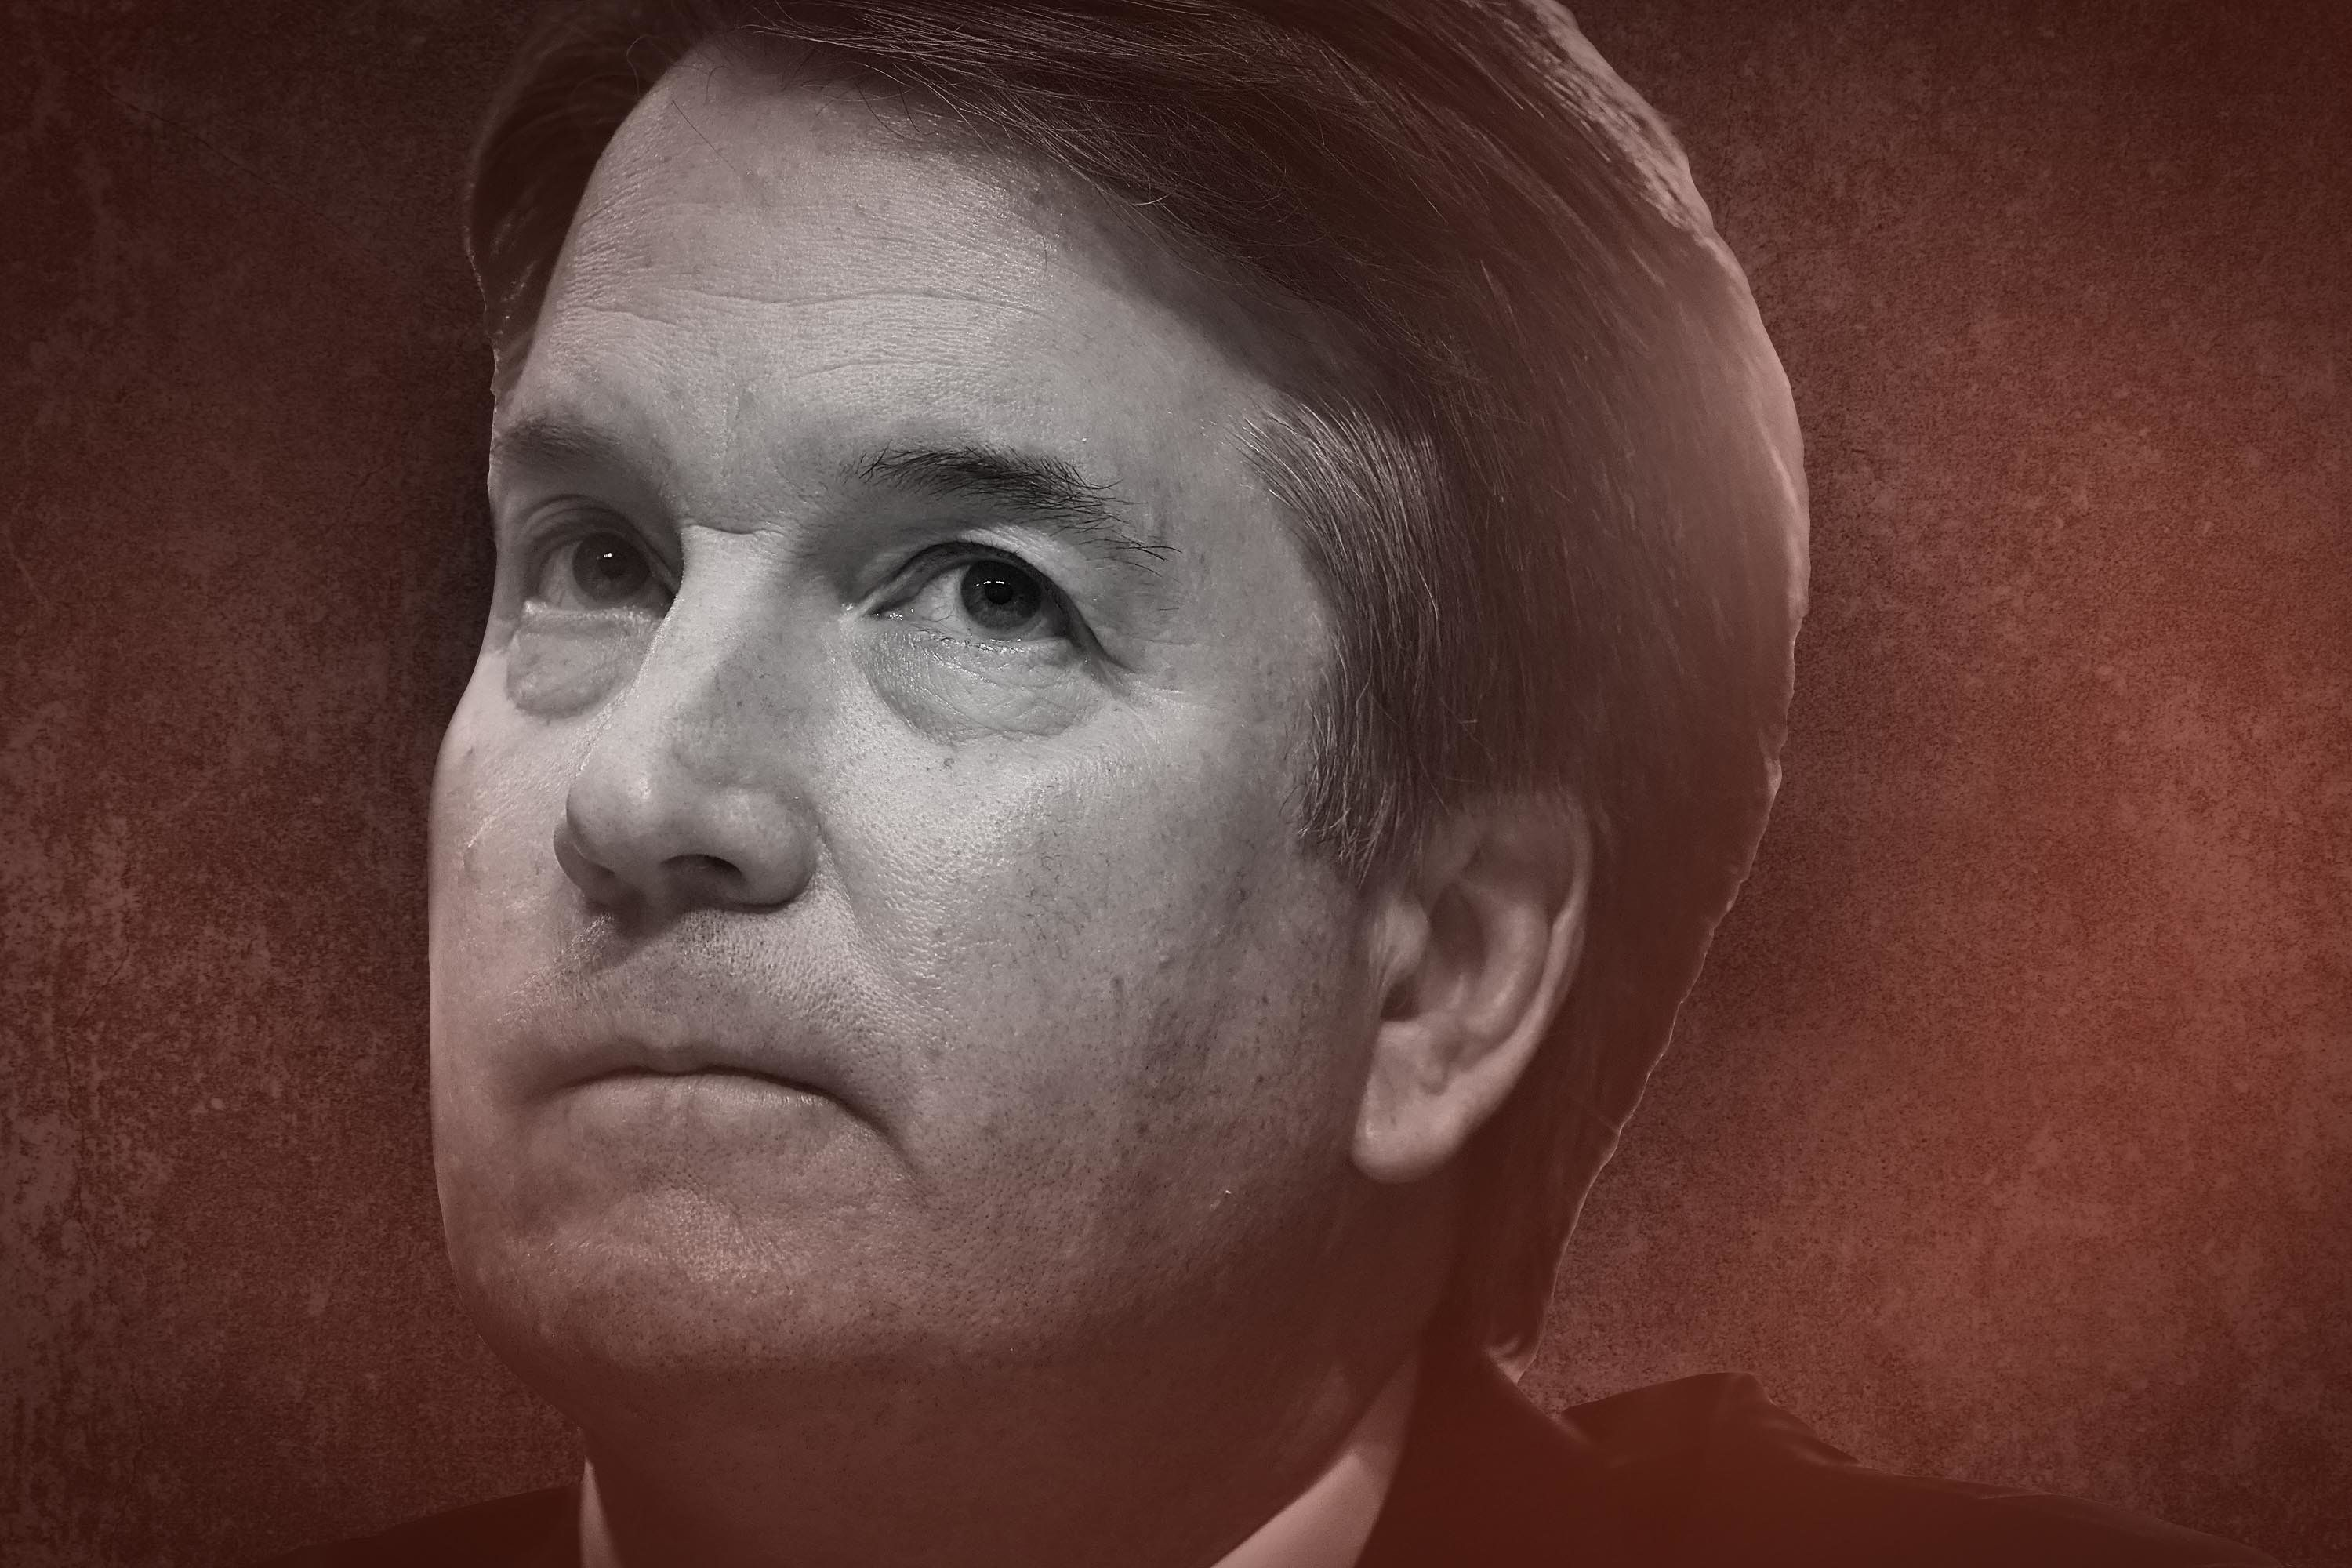 After alleging that Supreme Court nominee Brett Kavanaugh attempted to rape her at a party over three decades ago, Christine